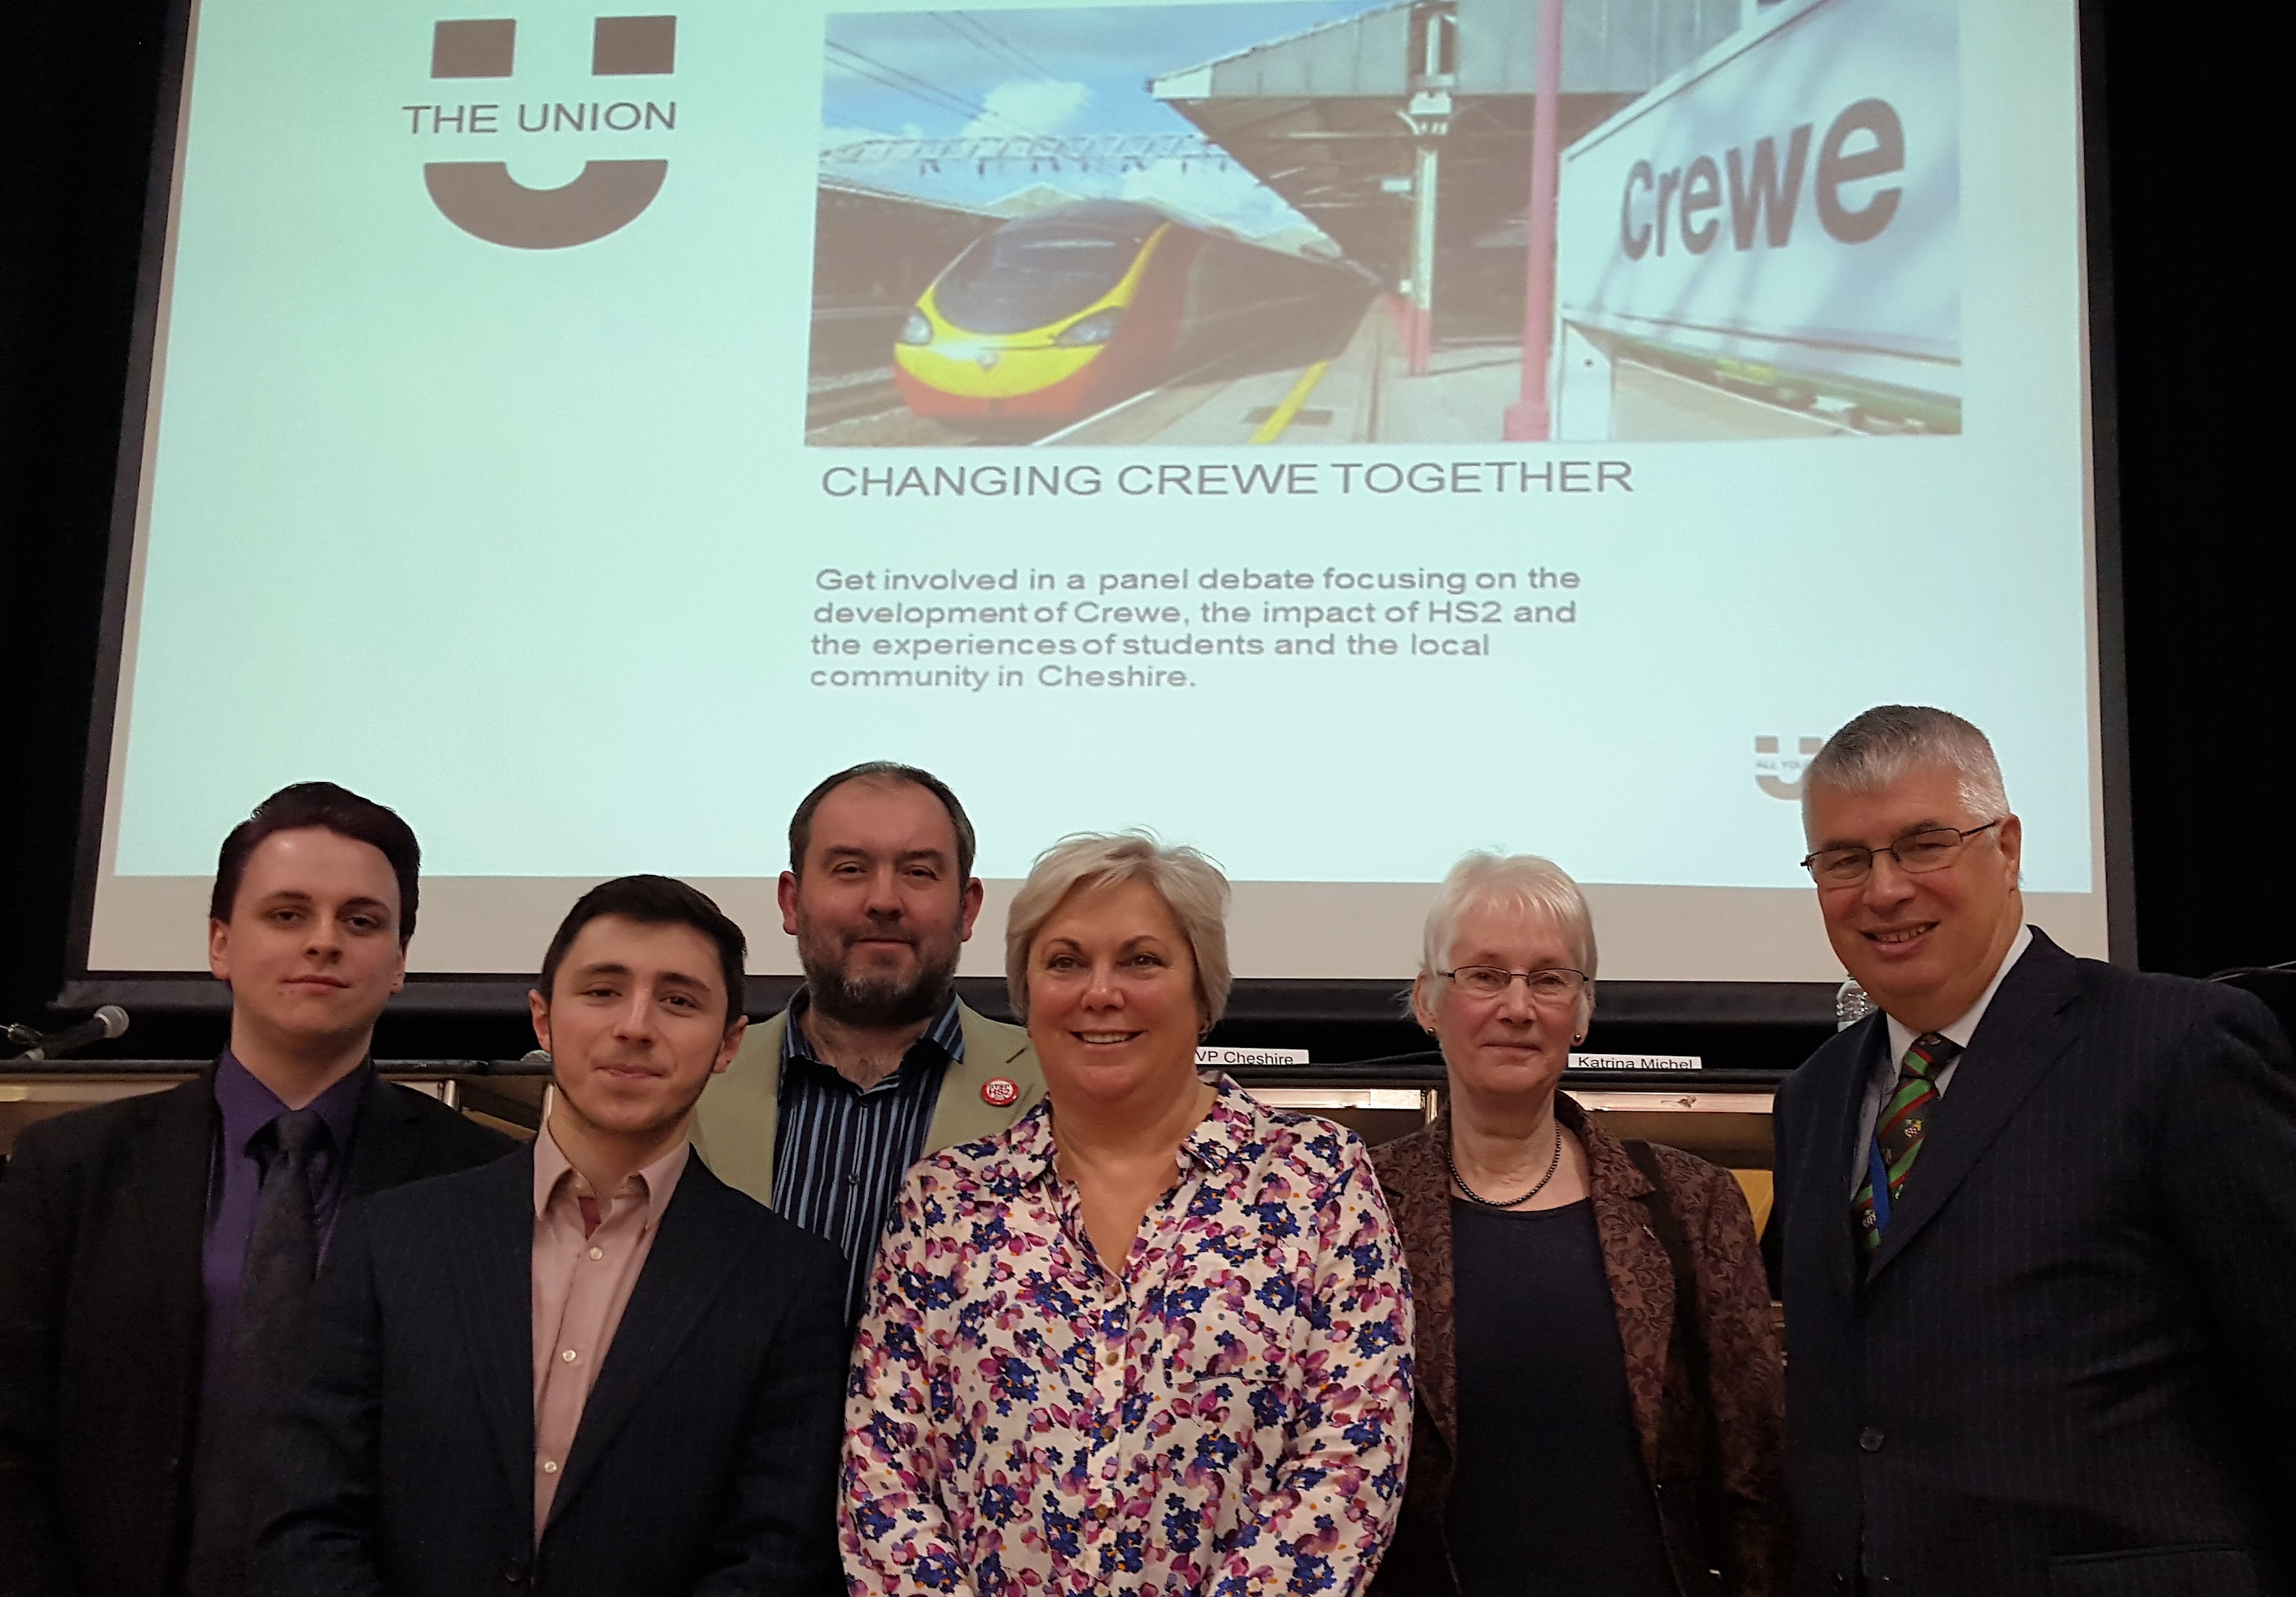 HS2 debate panel from MMU Cheshire in Crewe